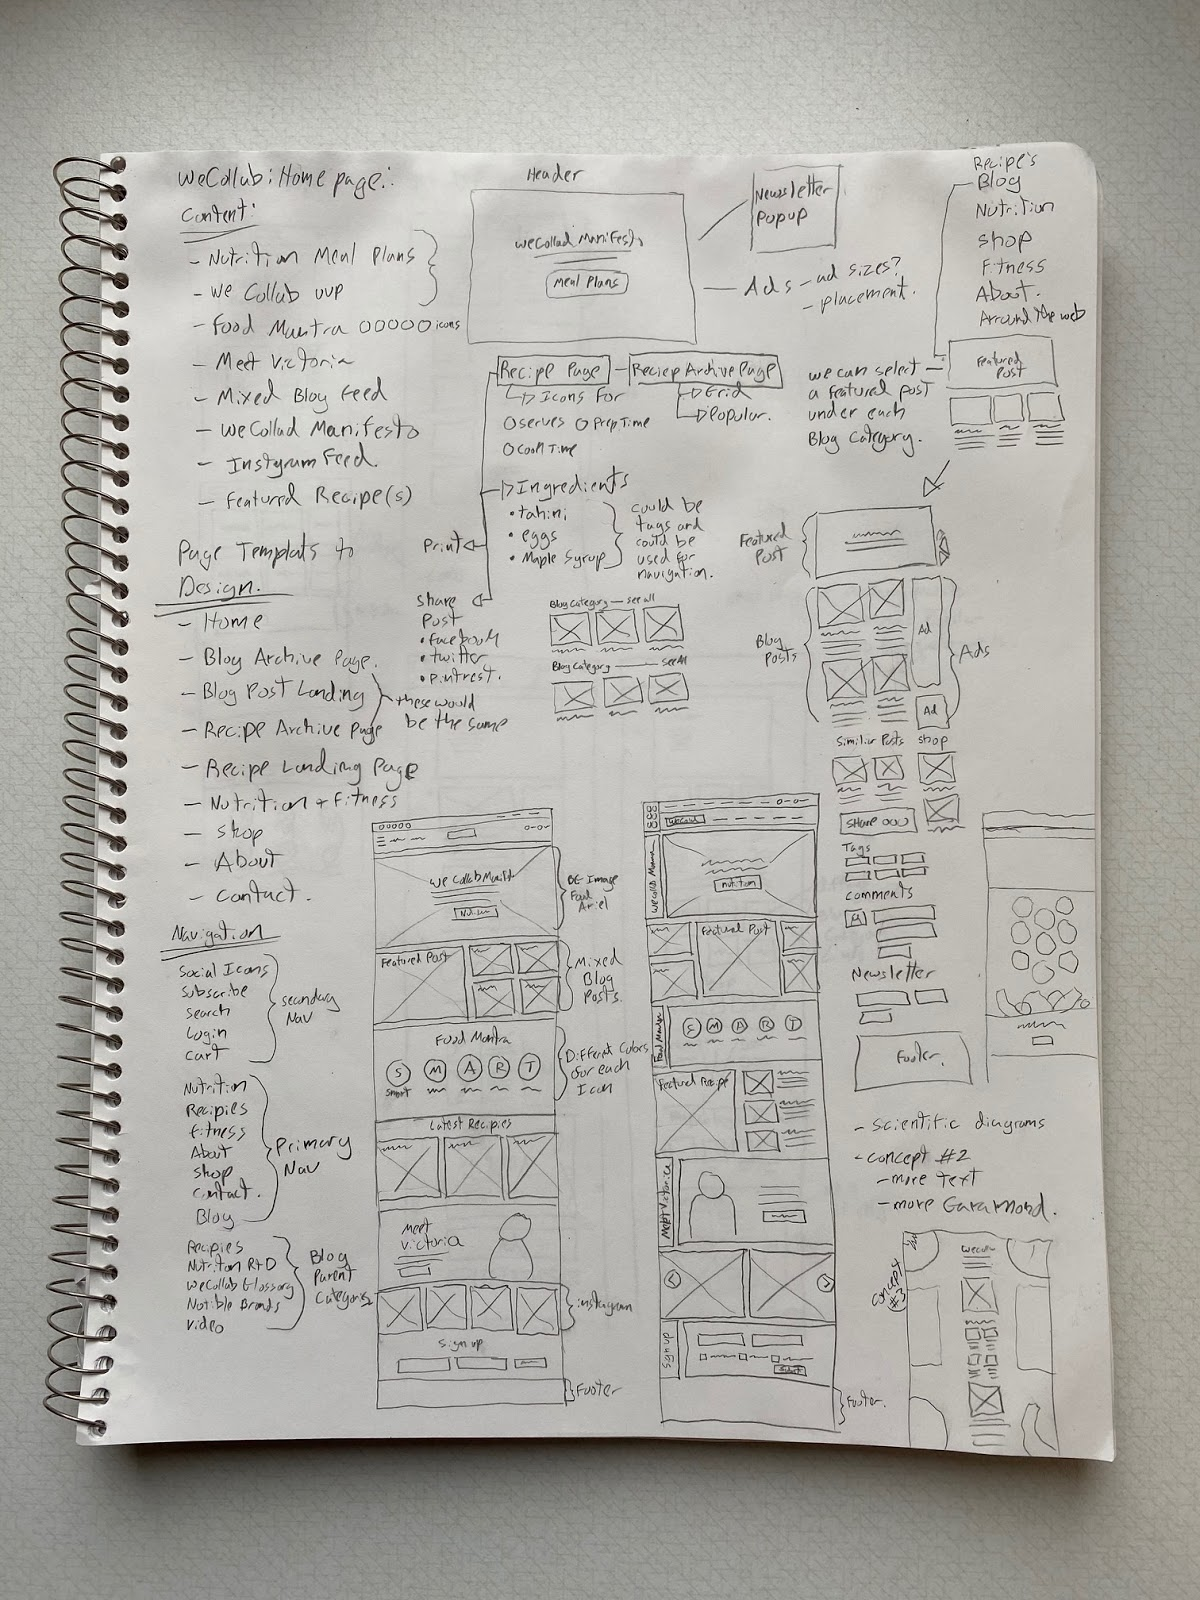 A sketch of our plans for the Iteration Insights website